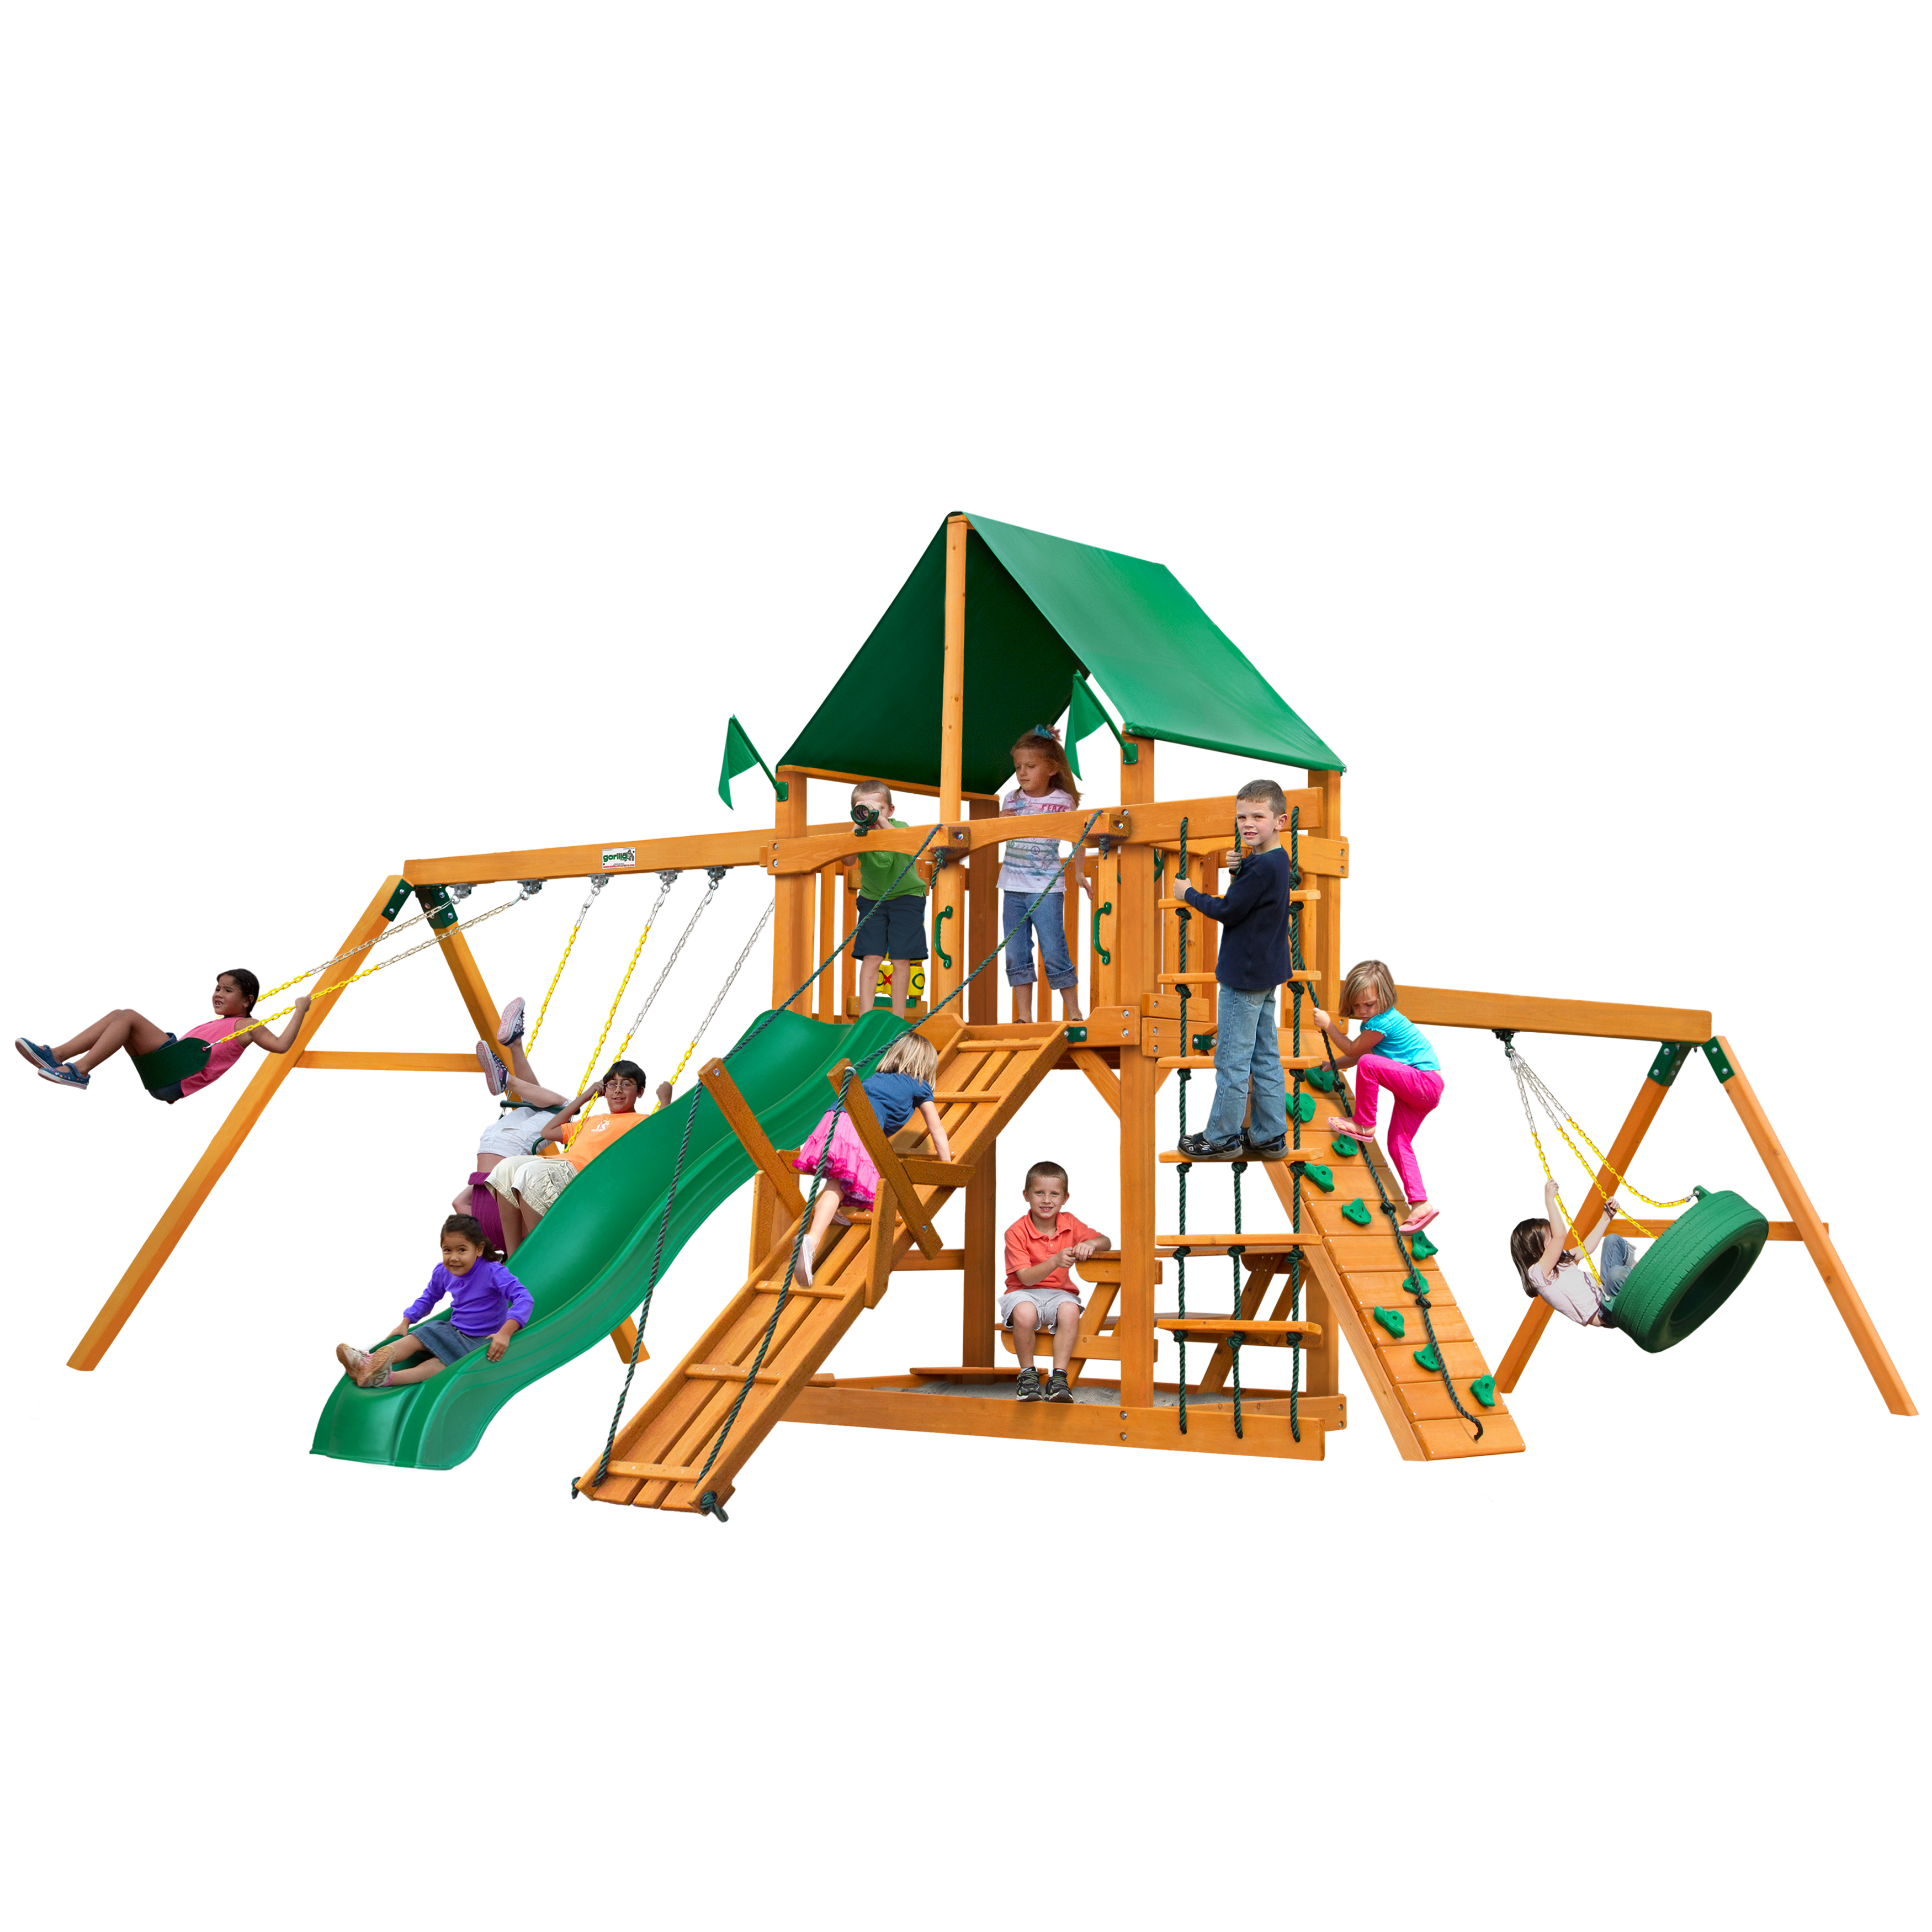 Gorilla Playsets Frontier Wooden Swing Set With Green Vinyl Canopy